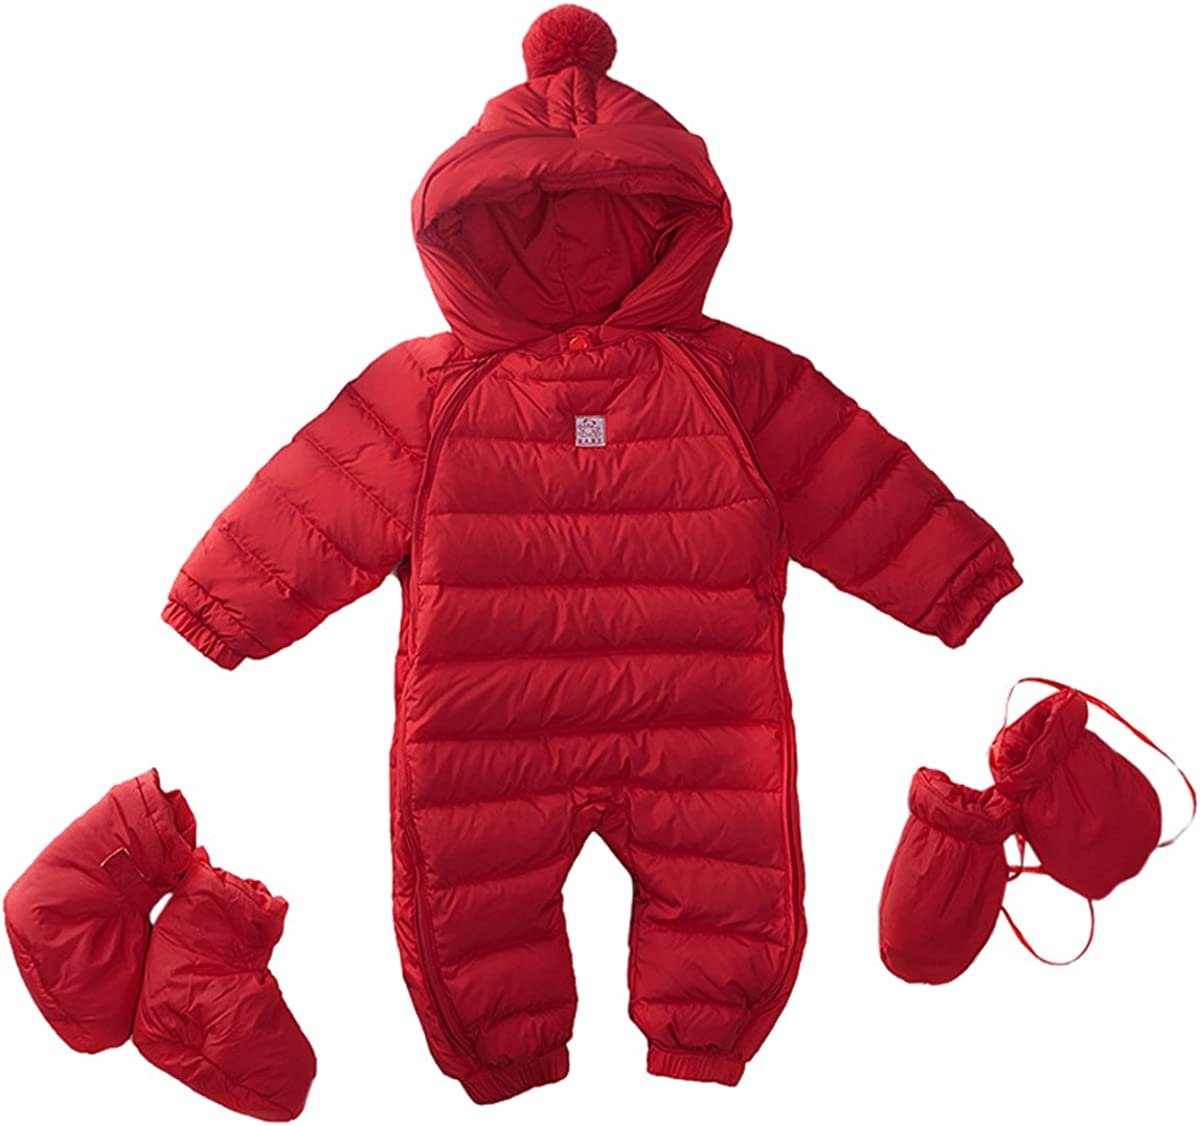 Bebone Newborn Baby Hooded Winter Puffer Snowsuit with Shoes and Gloves